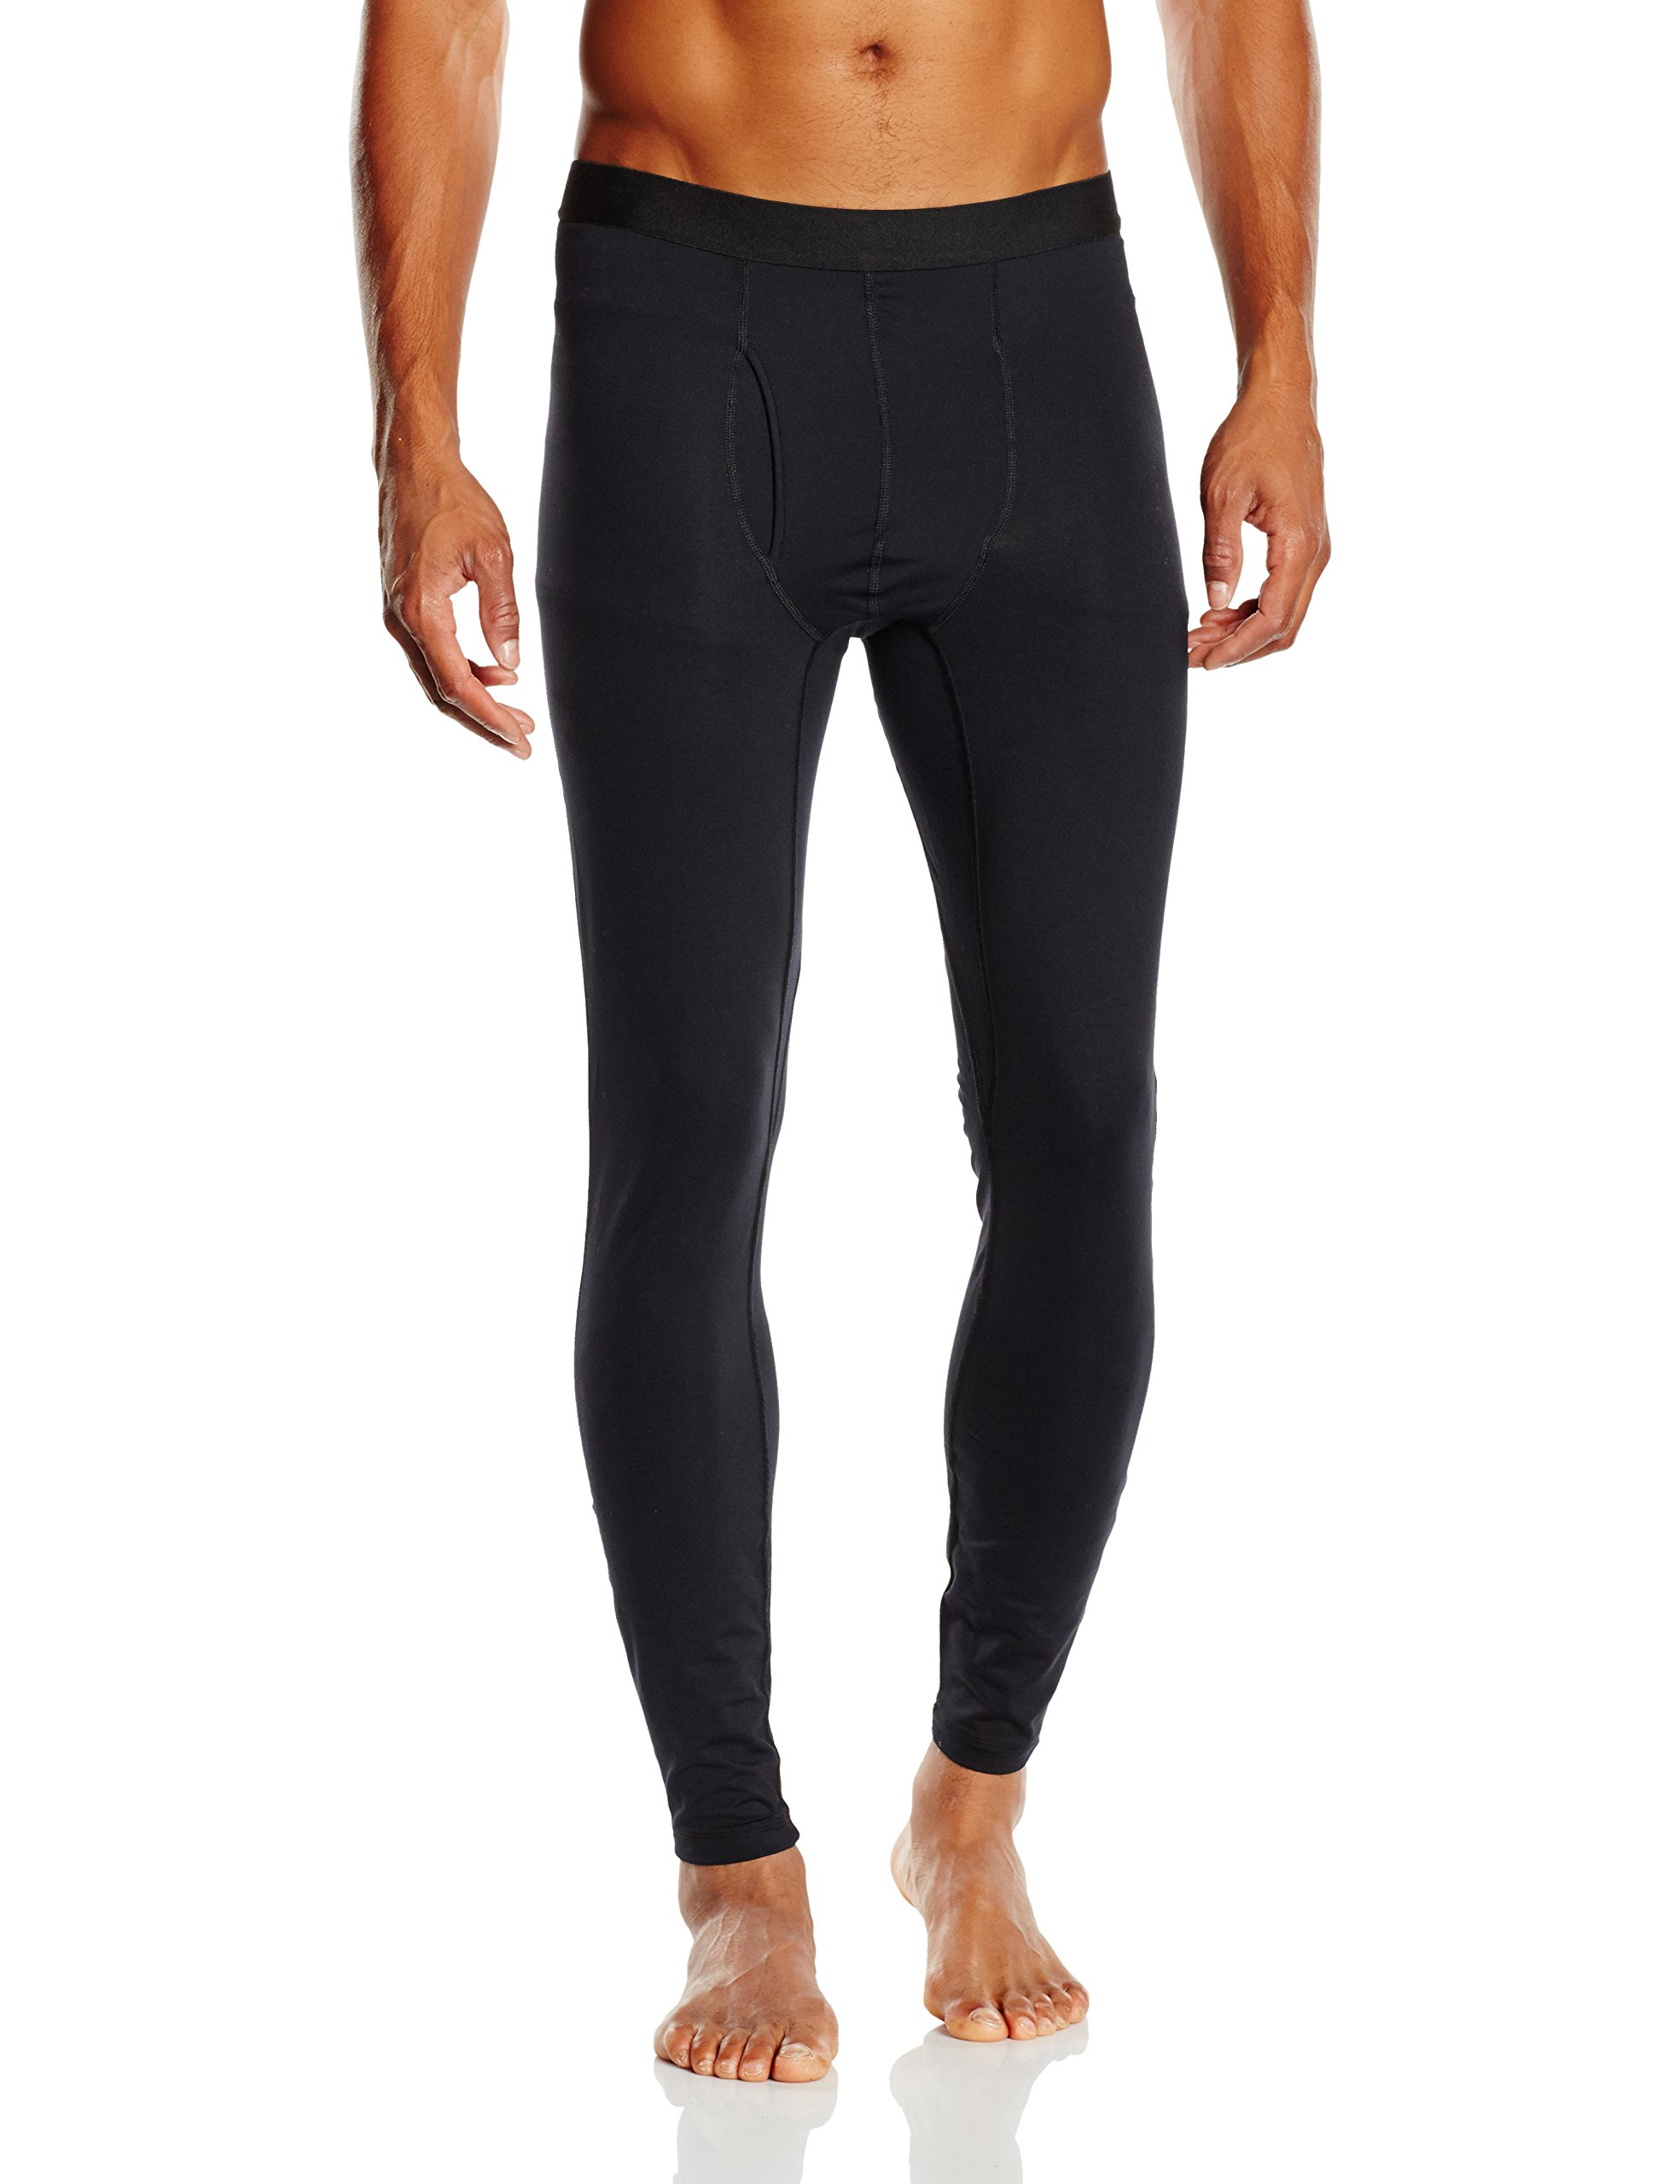 Men's Compression Base Layers